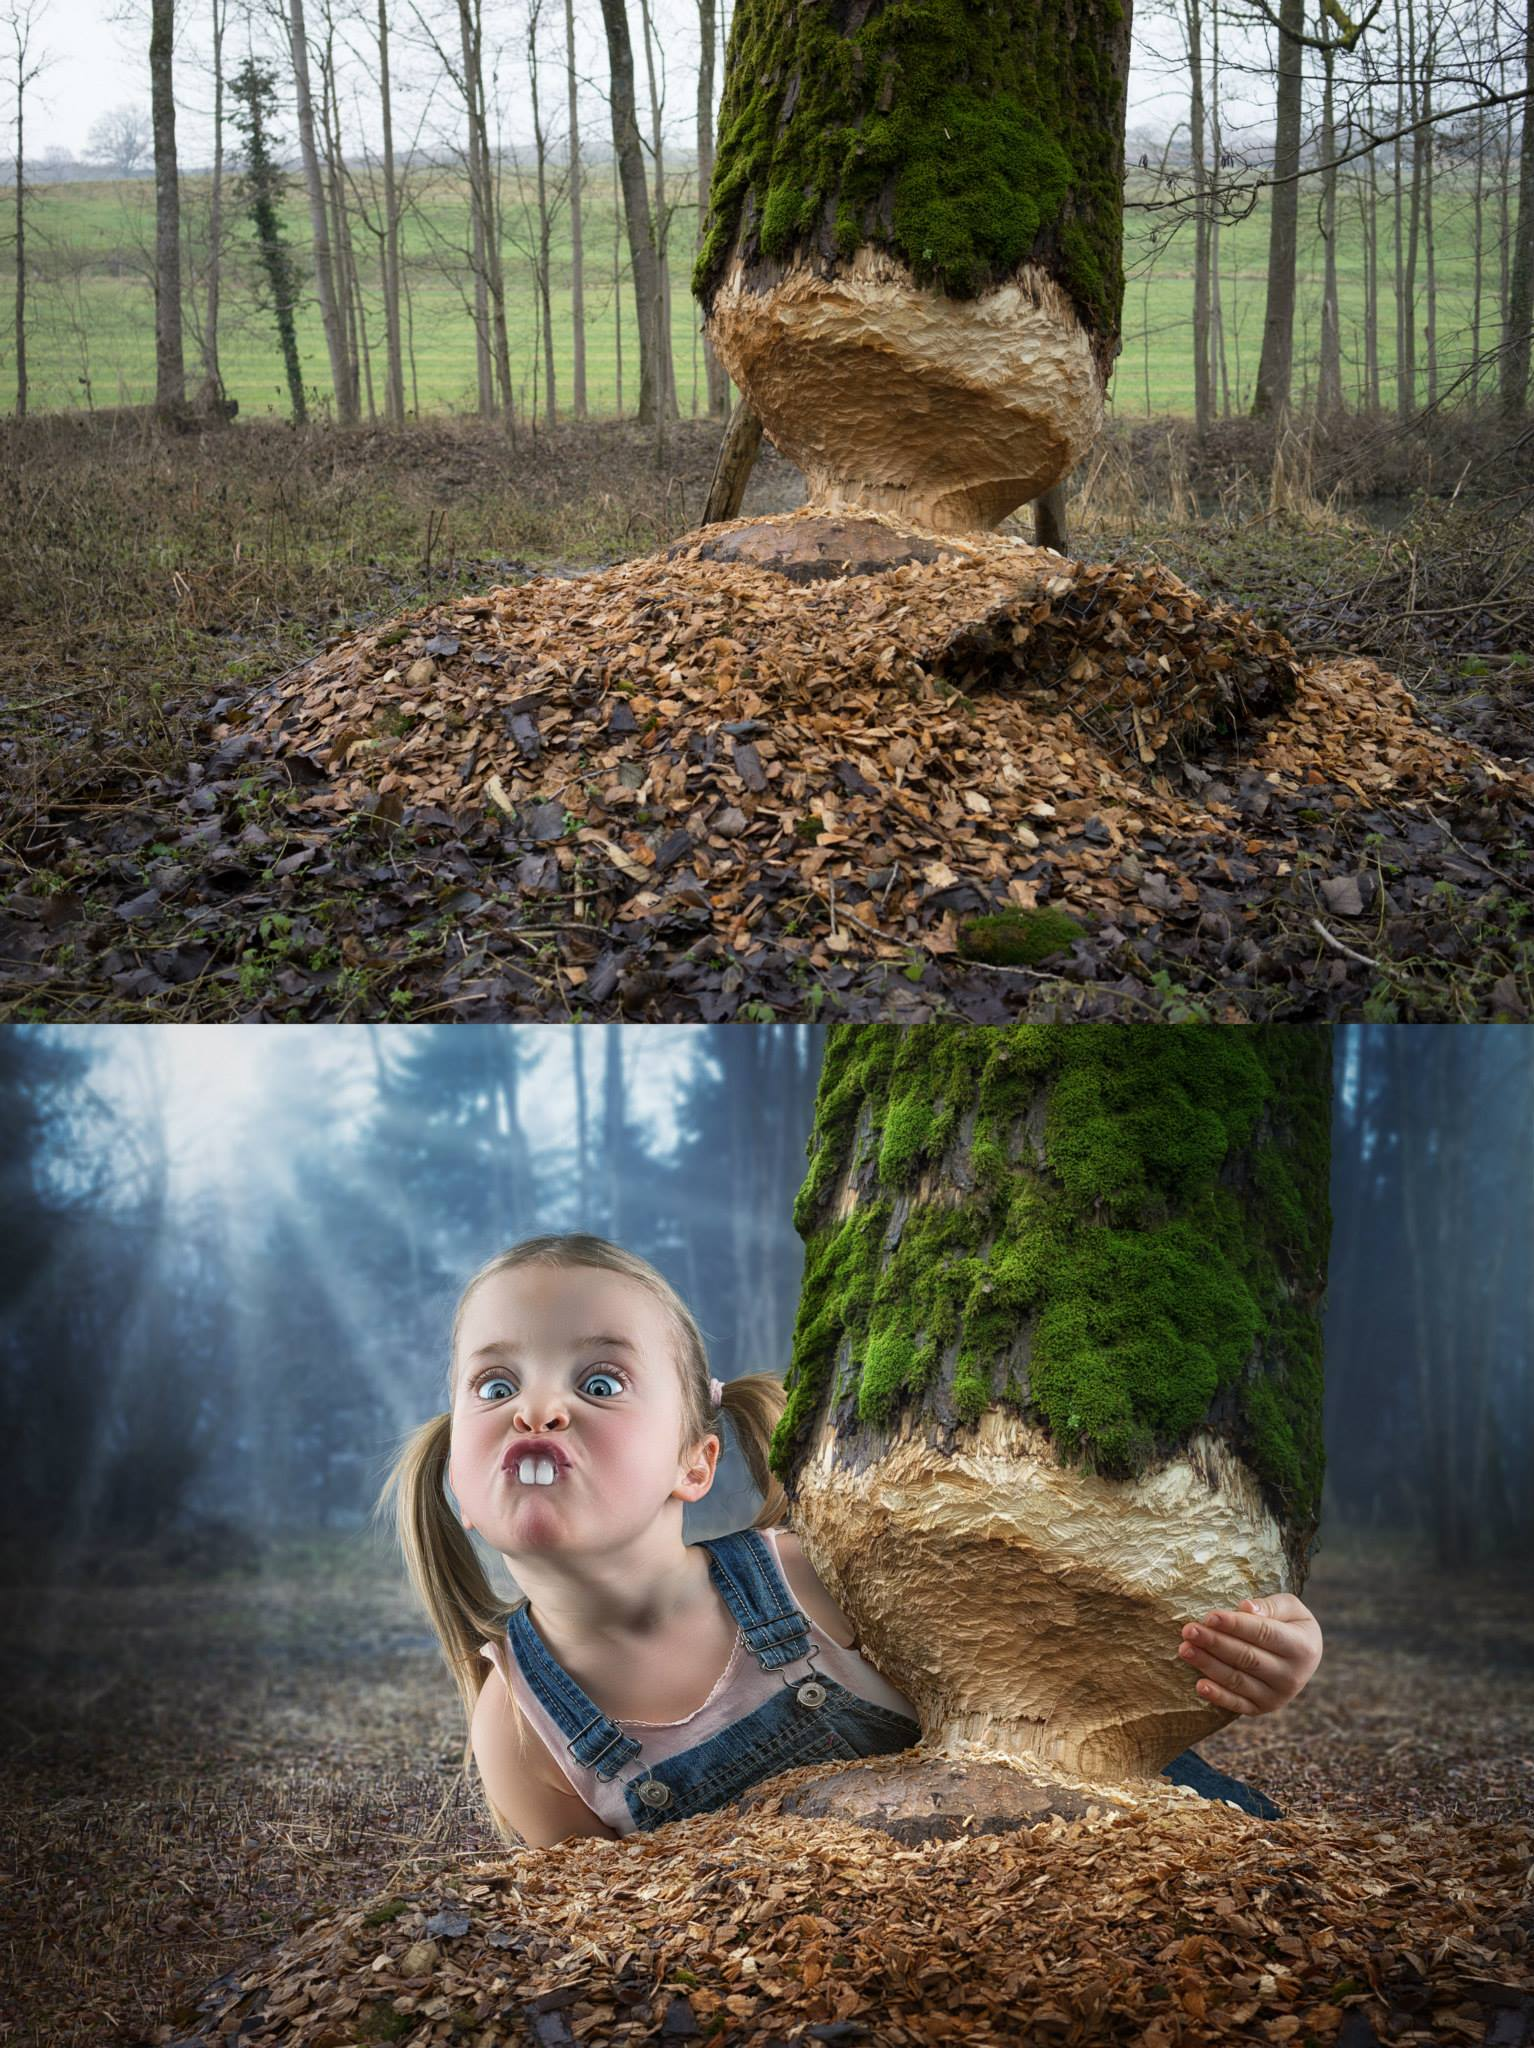 John Wilhelm is a photoholic – Just a little beaver / retouches photos